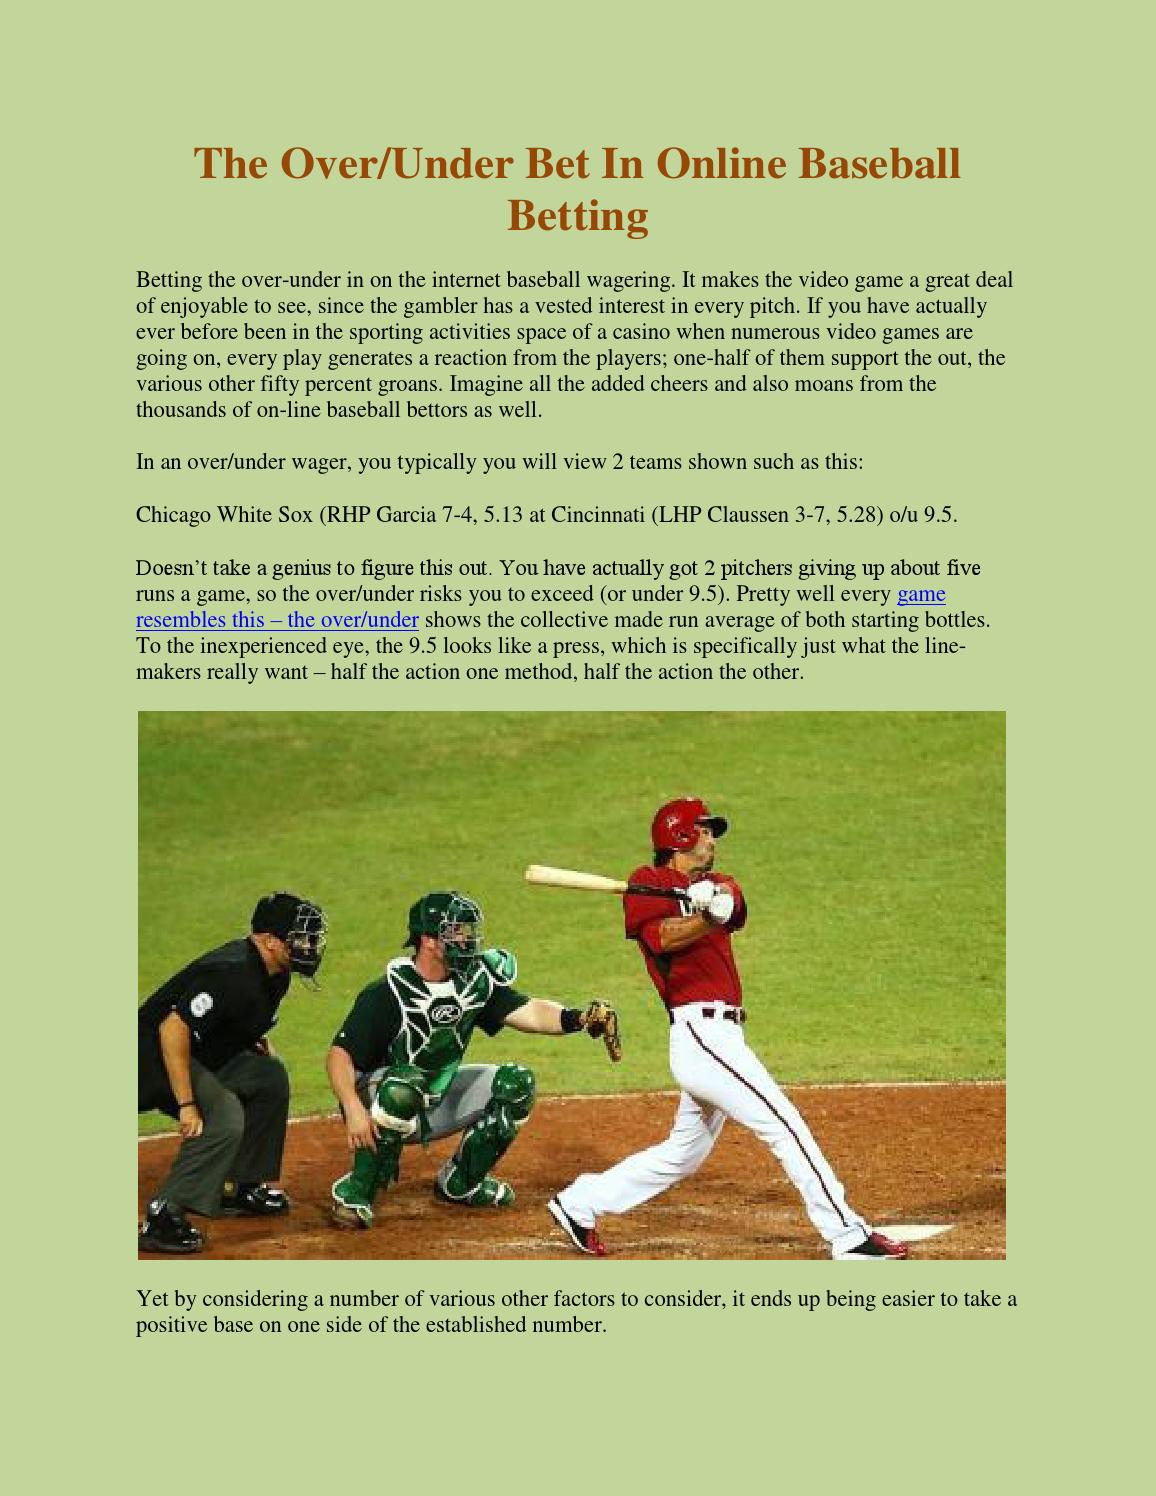 Over under betting baseball online betting superfectas